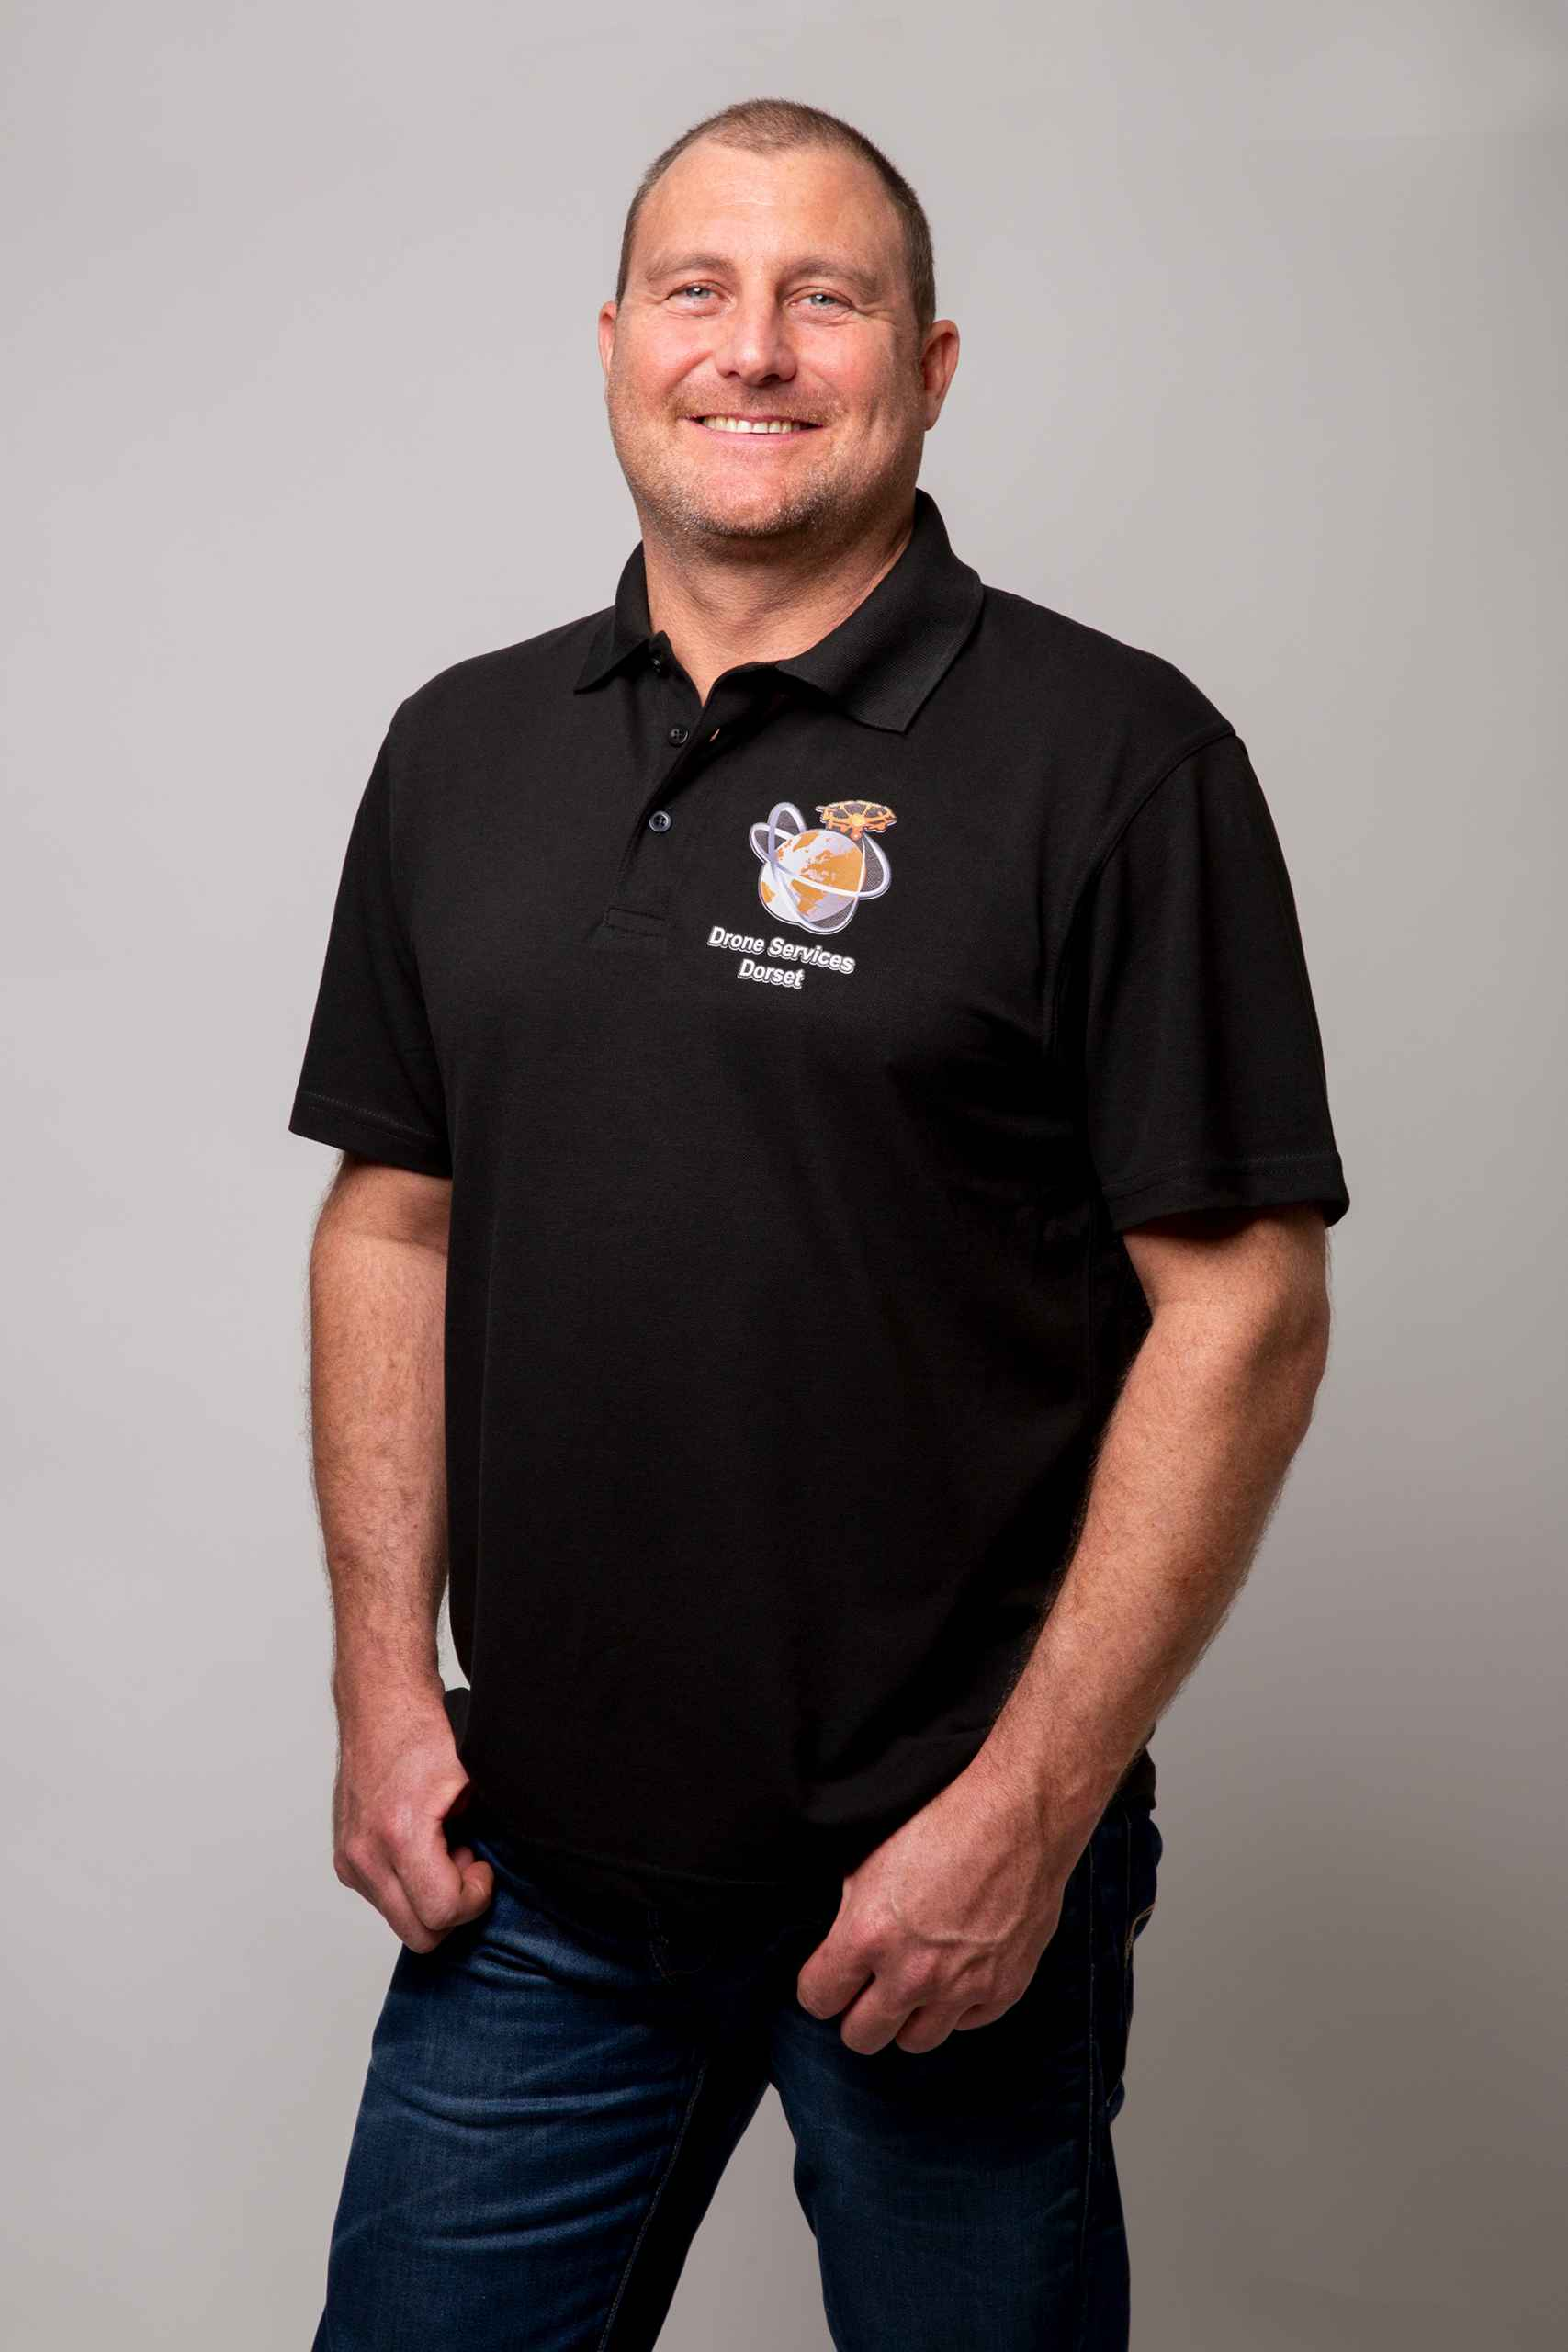 Lawrence DuPavey - Meet the team at Drone Services Dorset